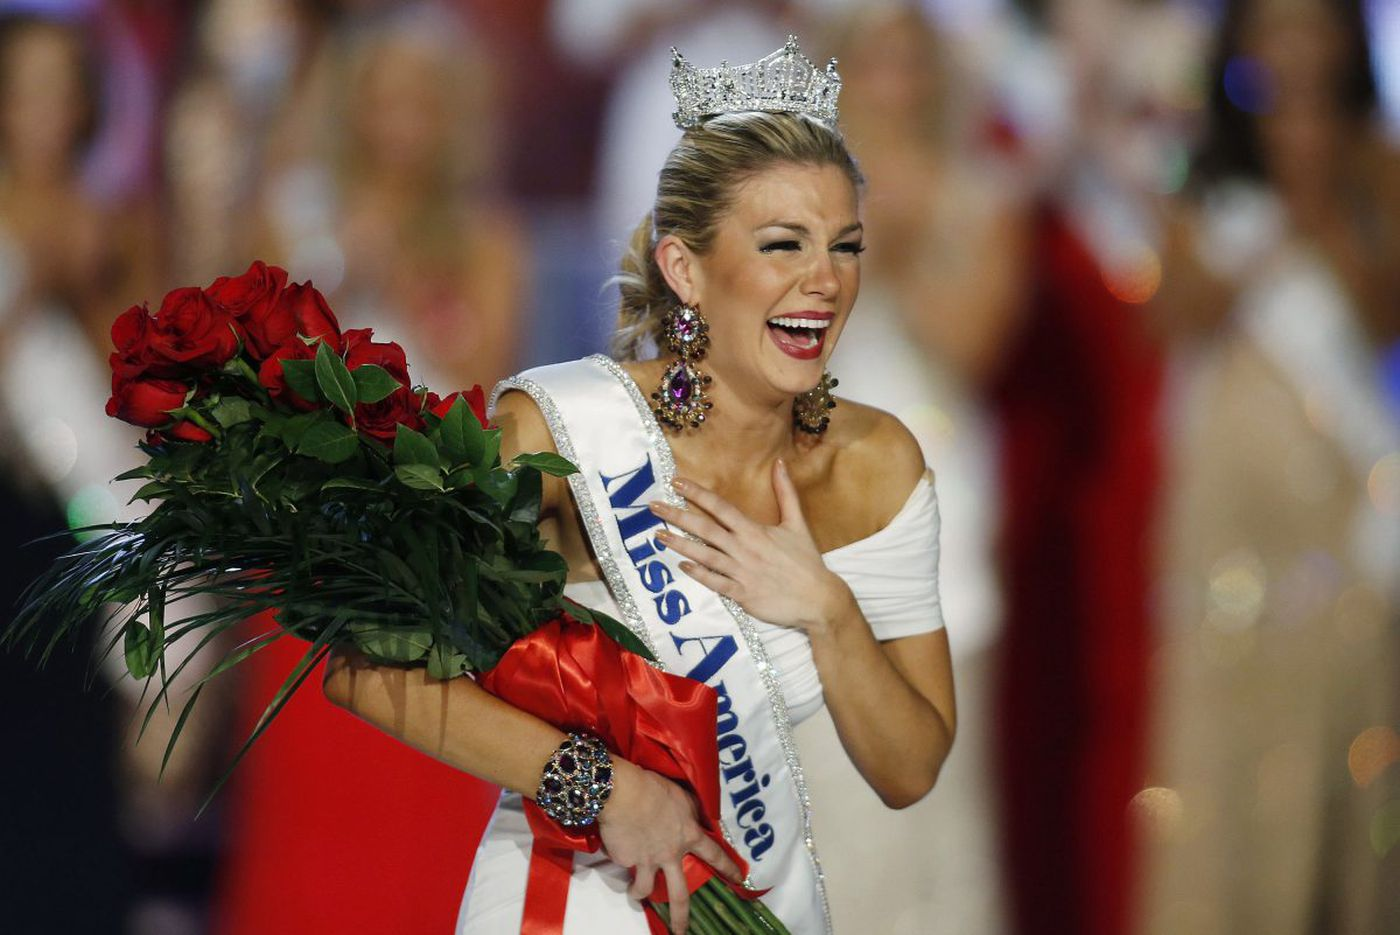 Firestorm continues over Miss America email scandal